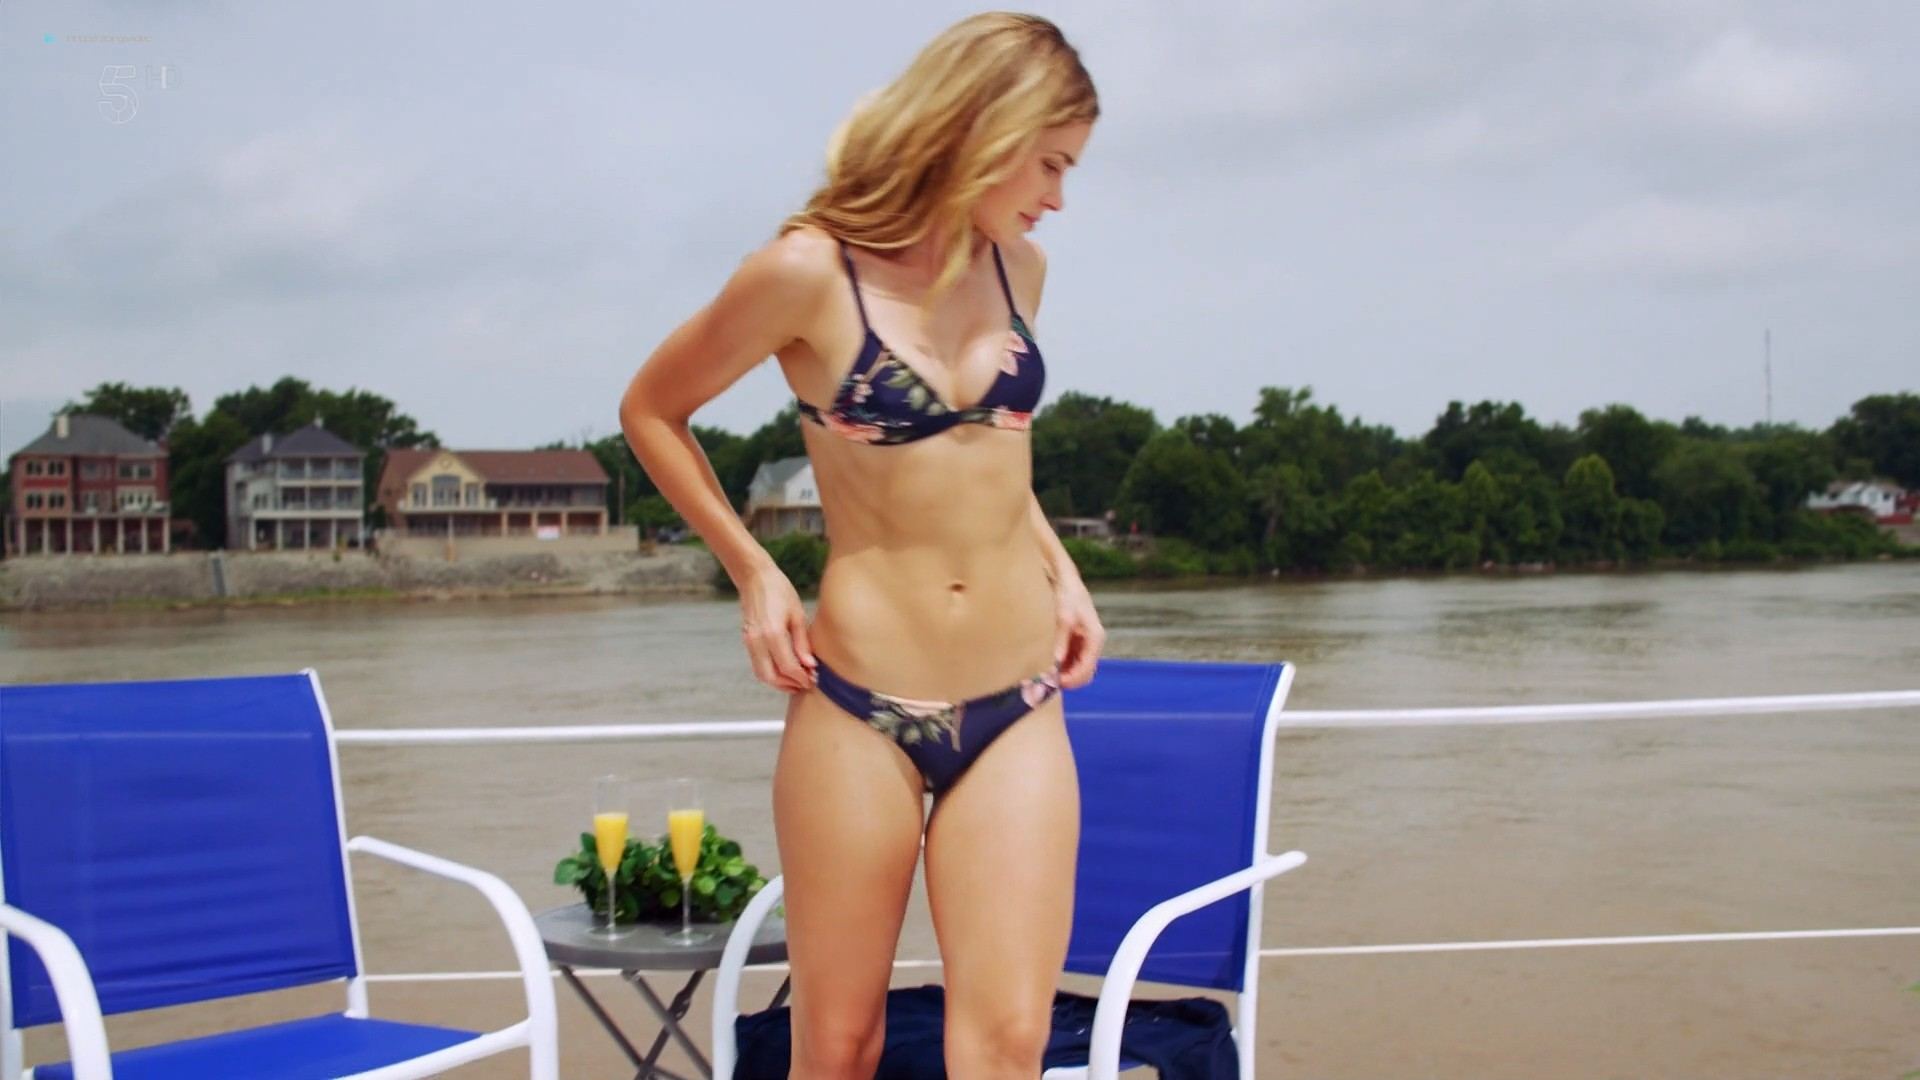 Anna Hutchison hot bikini Melissa Bolona and others sexy too - Murder at the Mansion (2018) HDTV ...